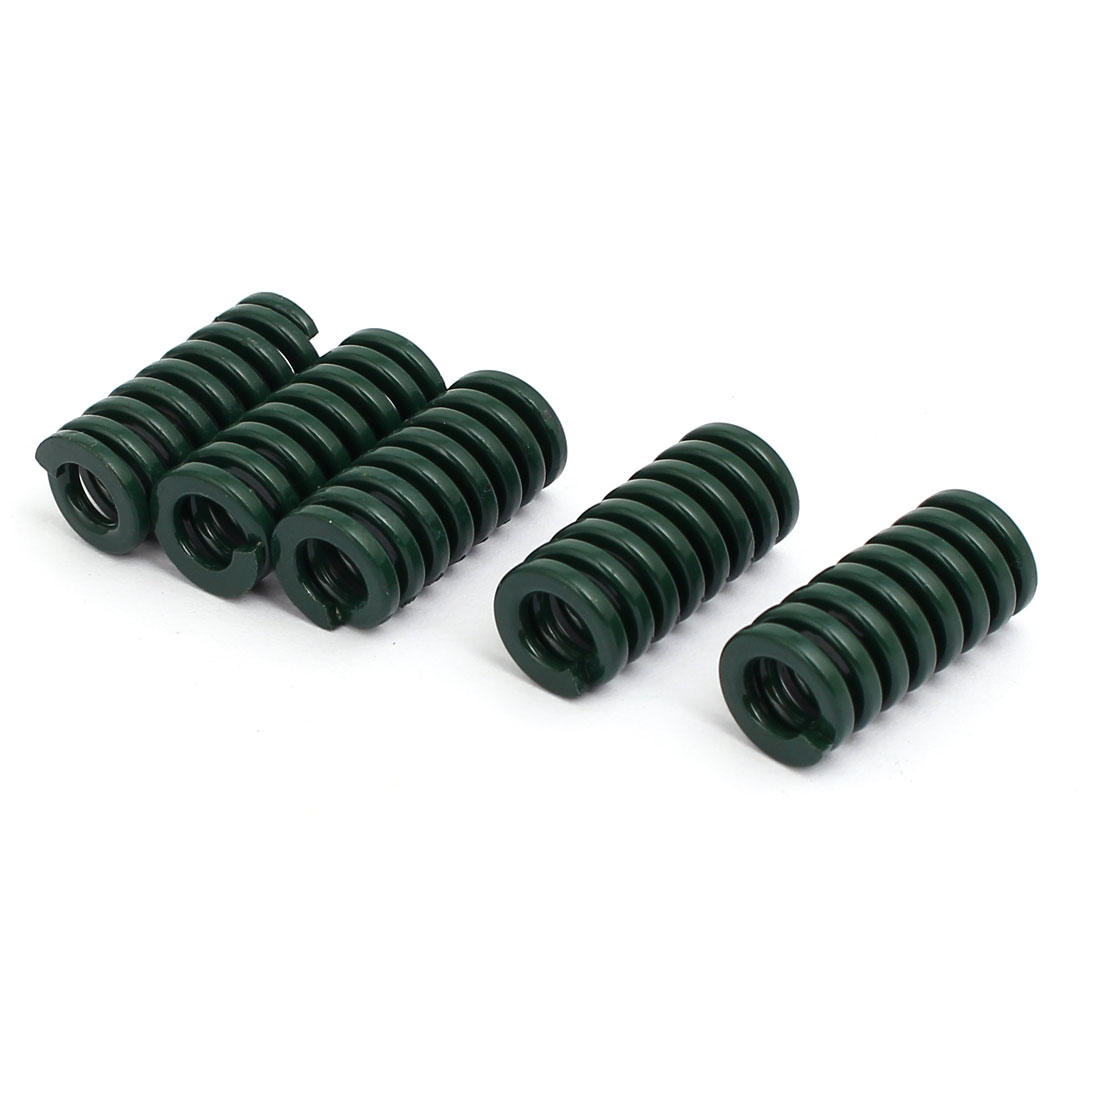 12mm OD 25mm Free Length Heavy Load Compression Mould Die Spring Green 5pcs